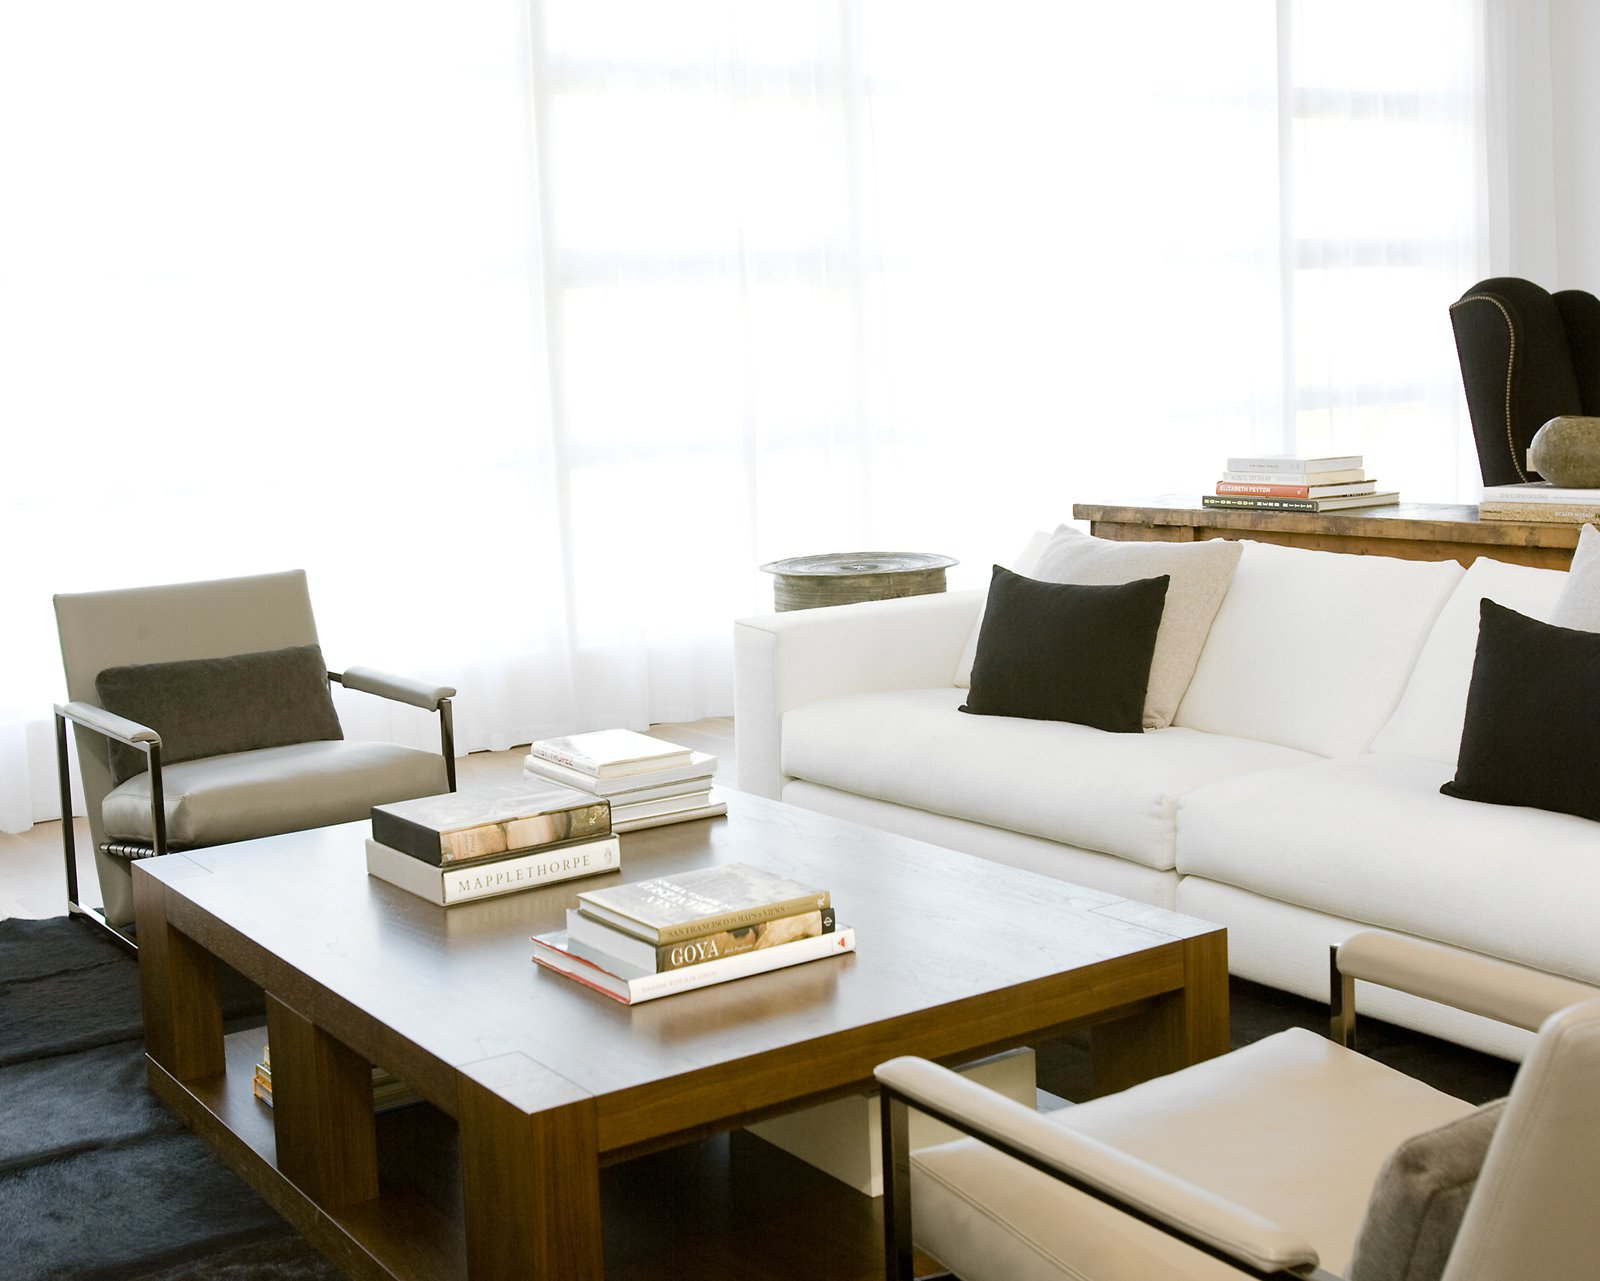 Hollis outfitted the living room with a sofa and lounge chairs from Minotti, a coffee table from Holly Hunt, and custom built-in bookcases (see previous photo) by CHM.Photo by   Ben Mayorga Photography  Photo 5 of 10 in Pacific Heights Remodel